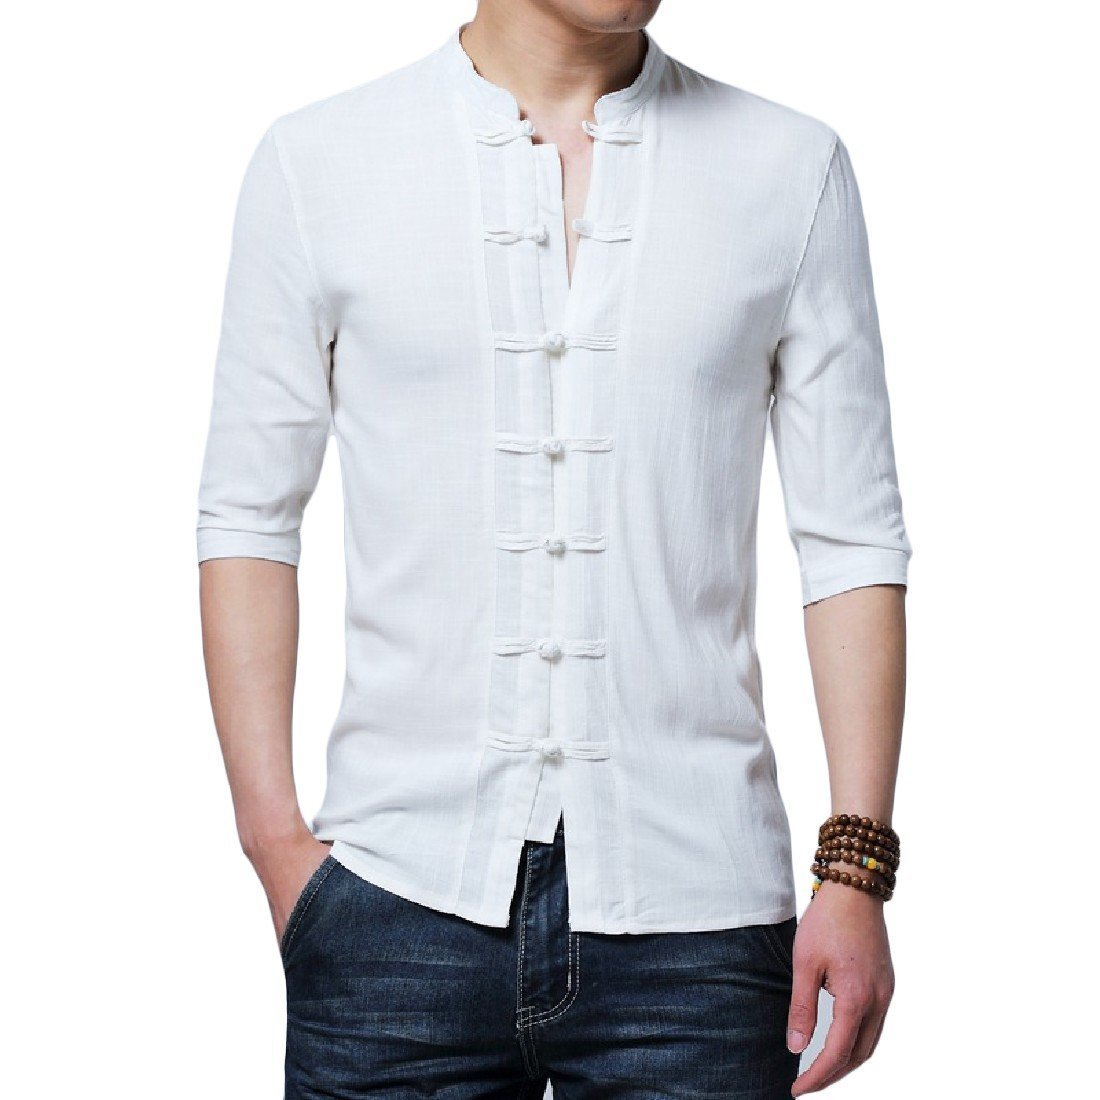 YUNY Mens Pure Color Business Linen Stand Collar Polo Top Shirt White 3XL